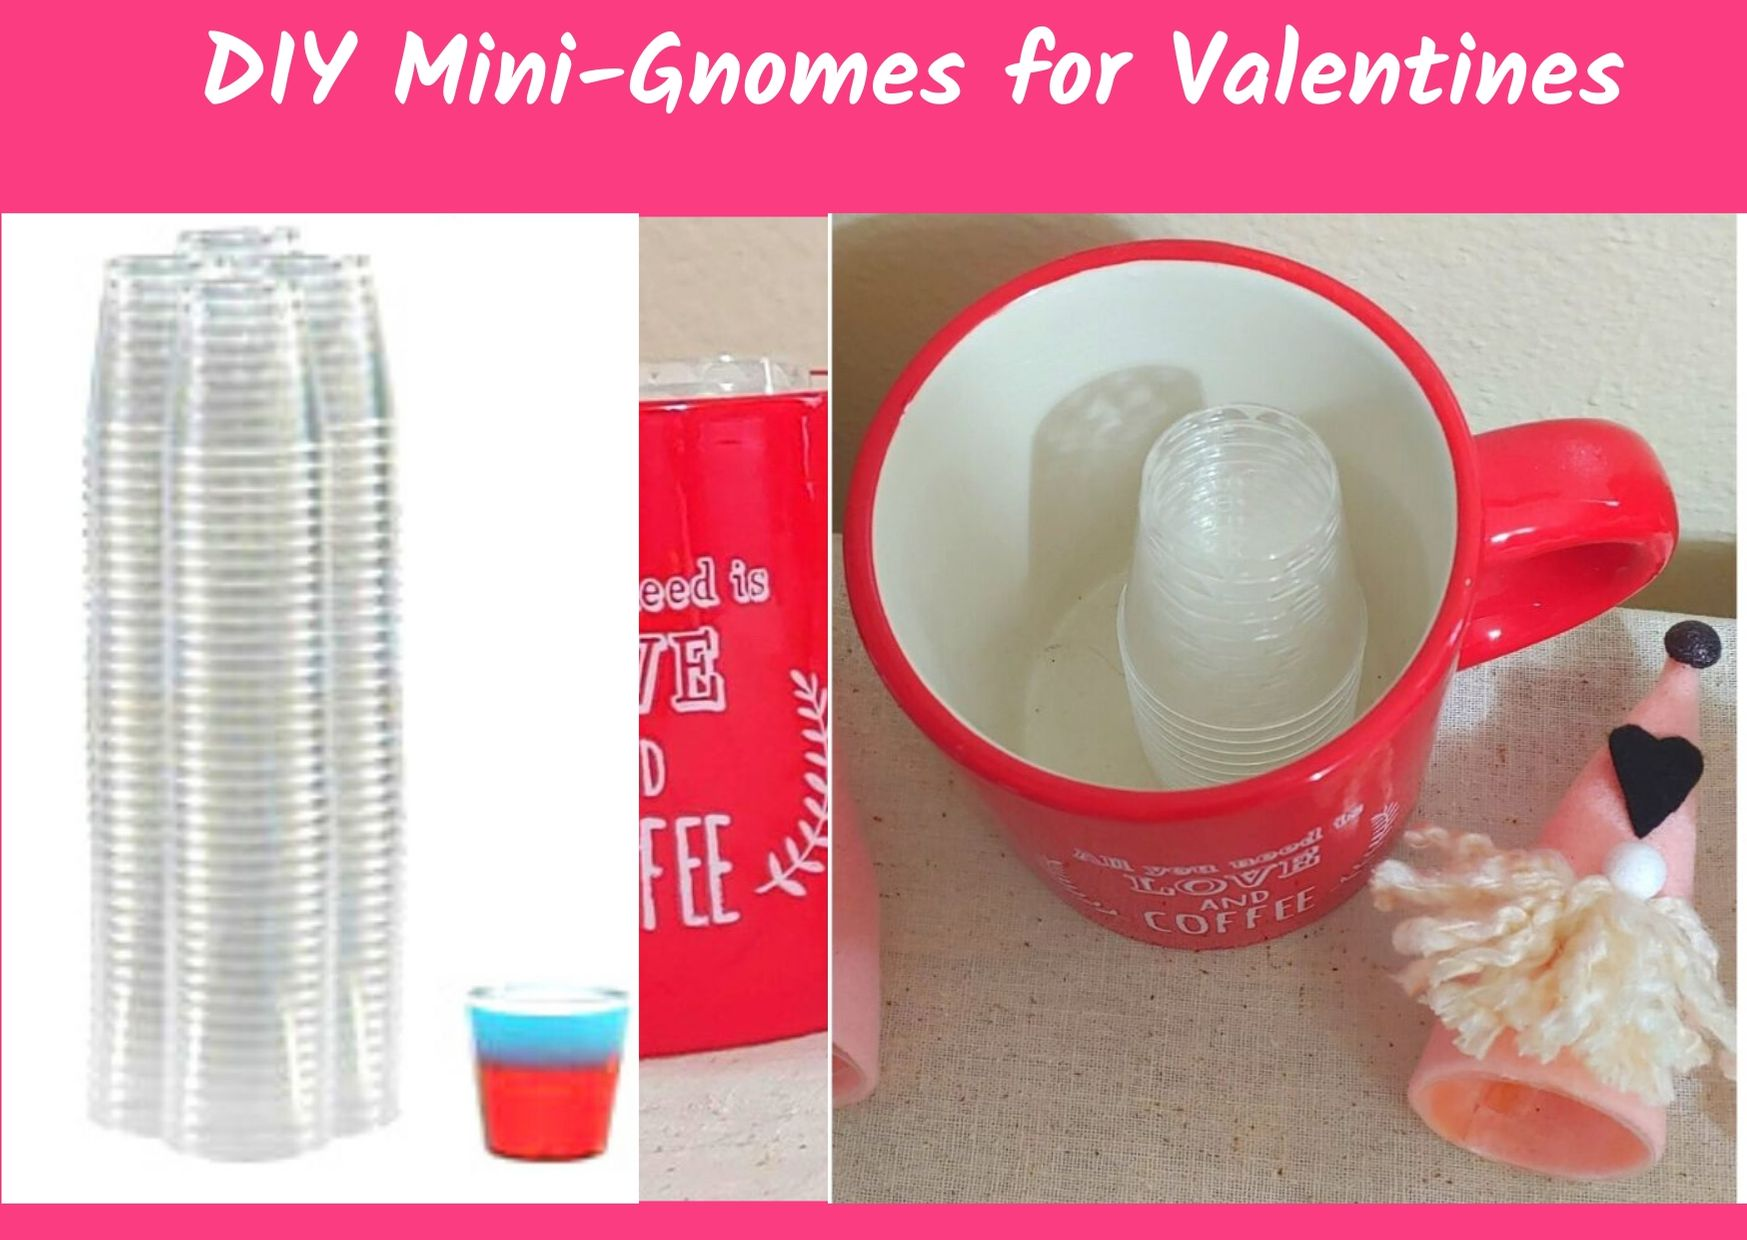 DIY Valentine's Day Mini-Gnomes